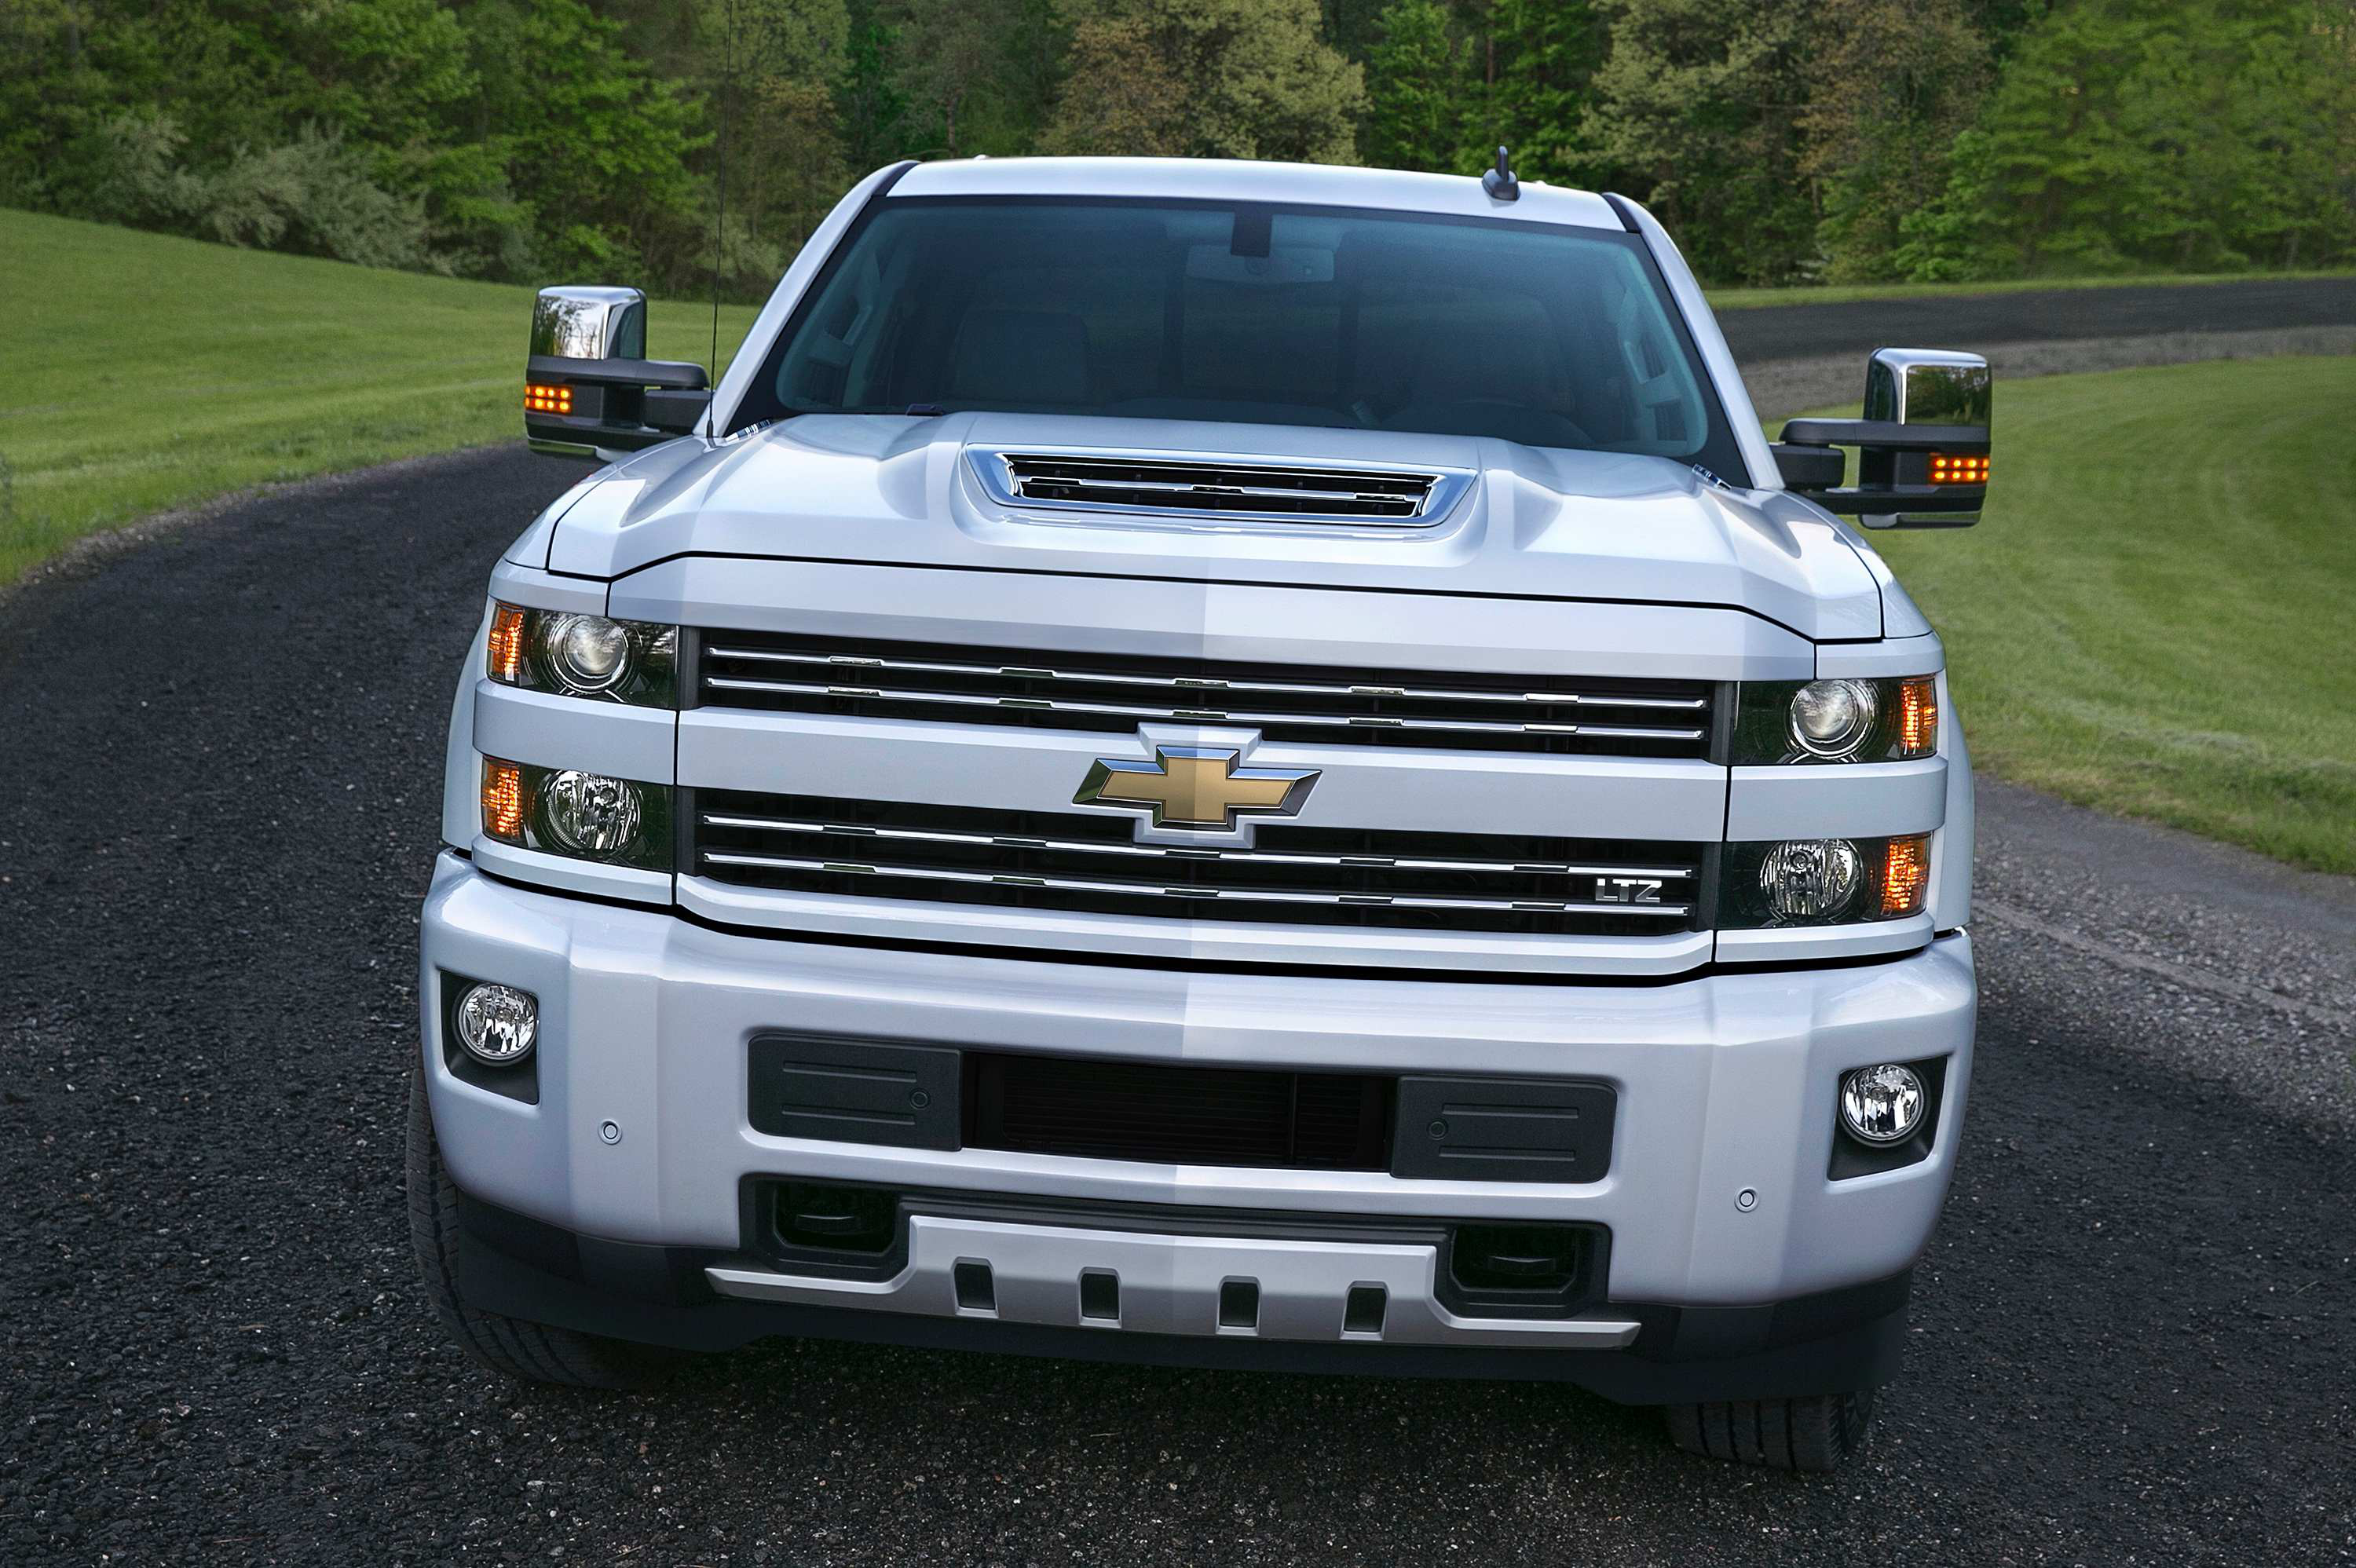 2017 Chevrolet Silverado 2500HD 003 gm reveals new front end design for 2017 chevy silverado hd, gmc  at crackthecode.co